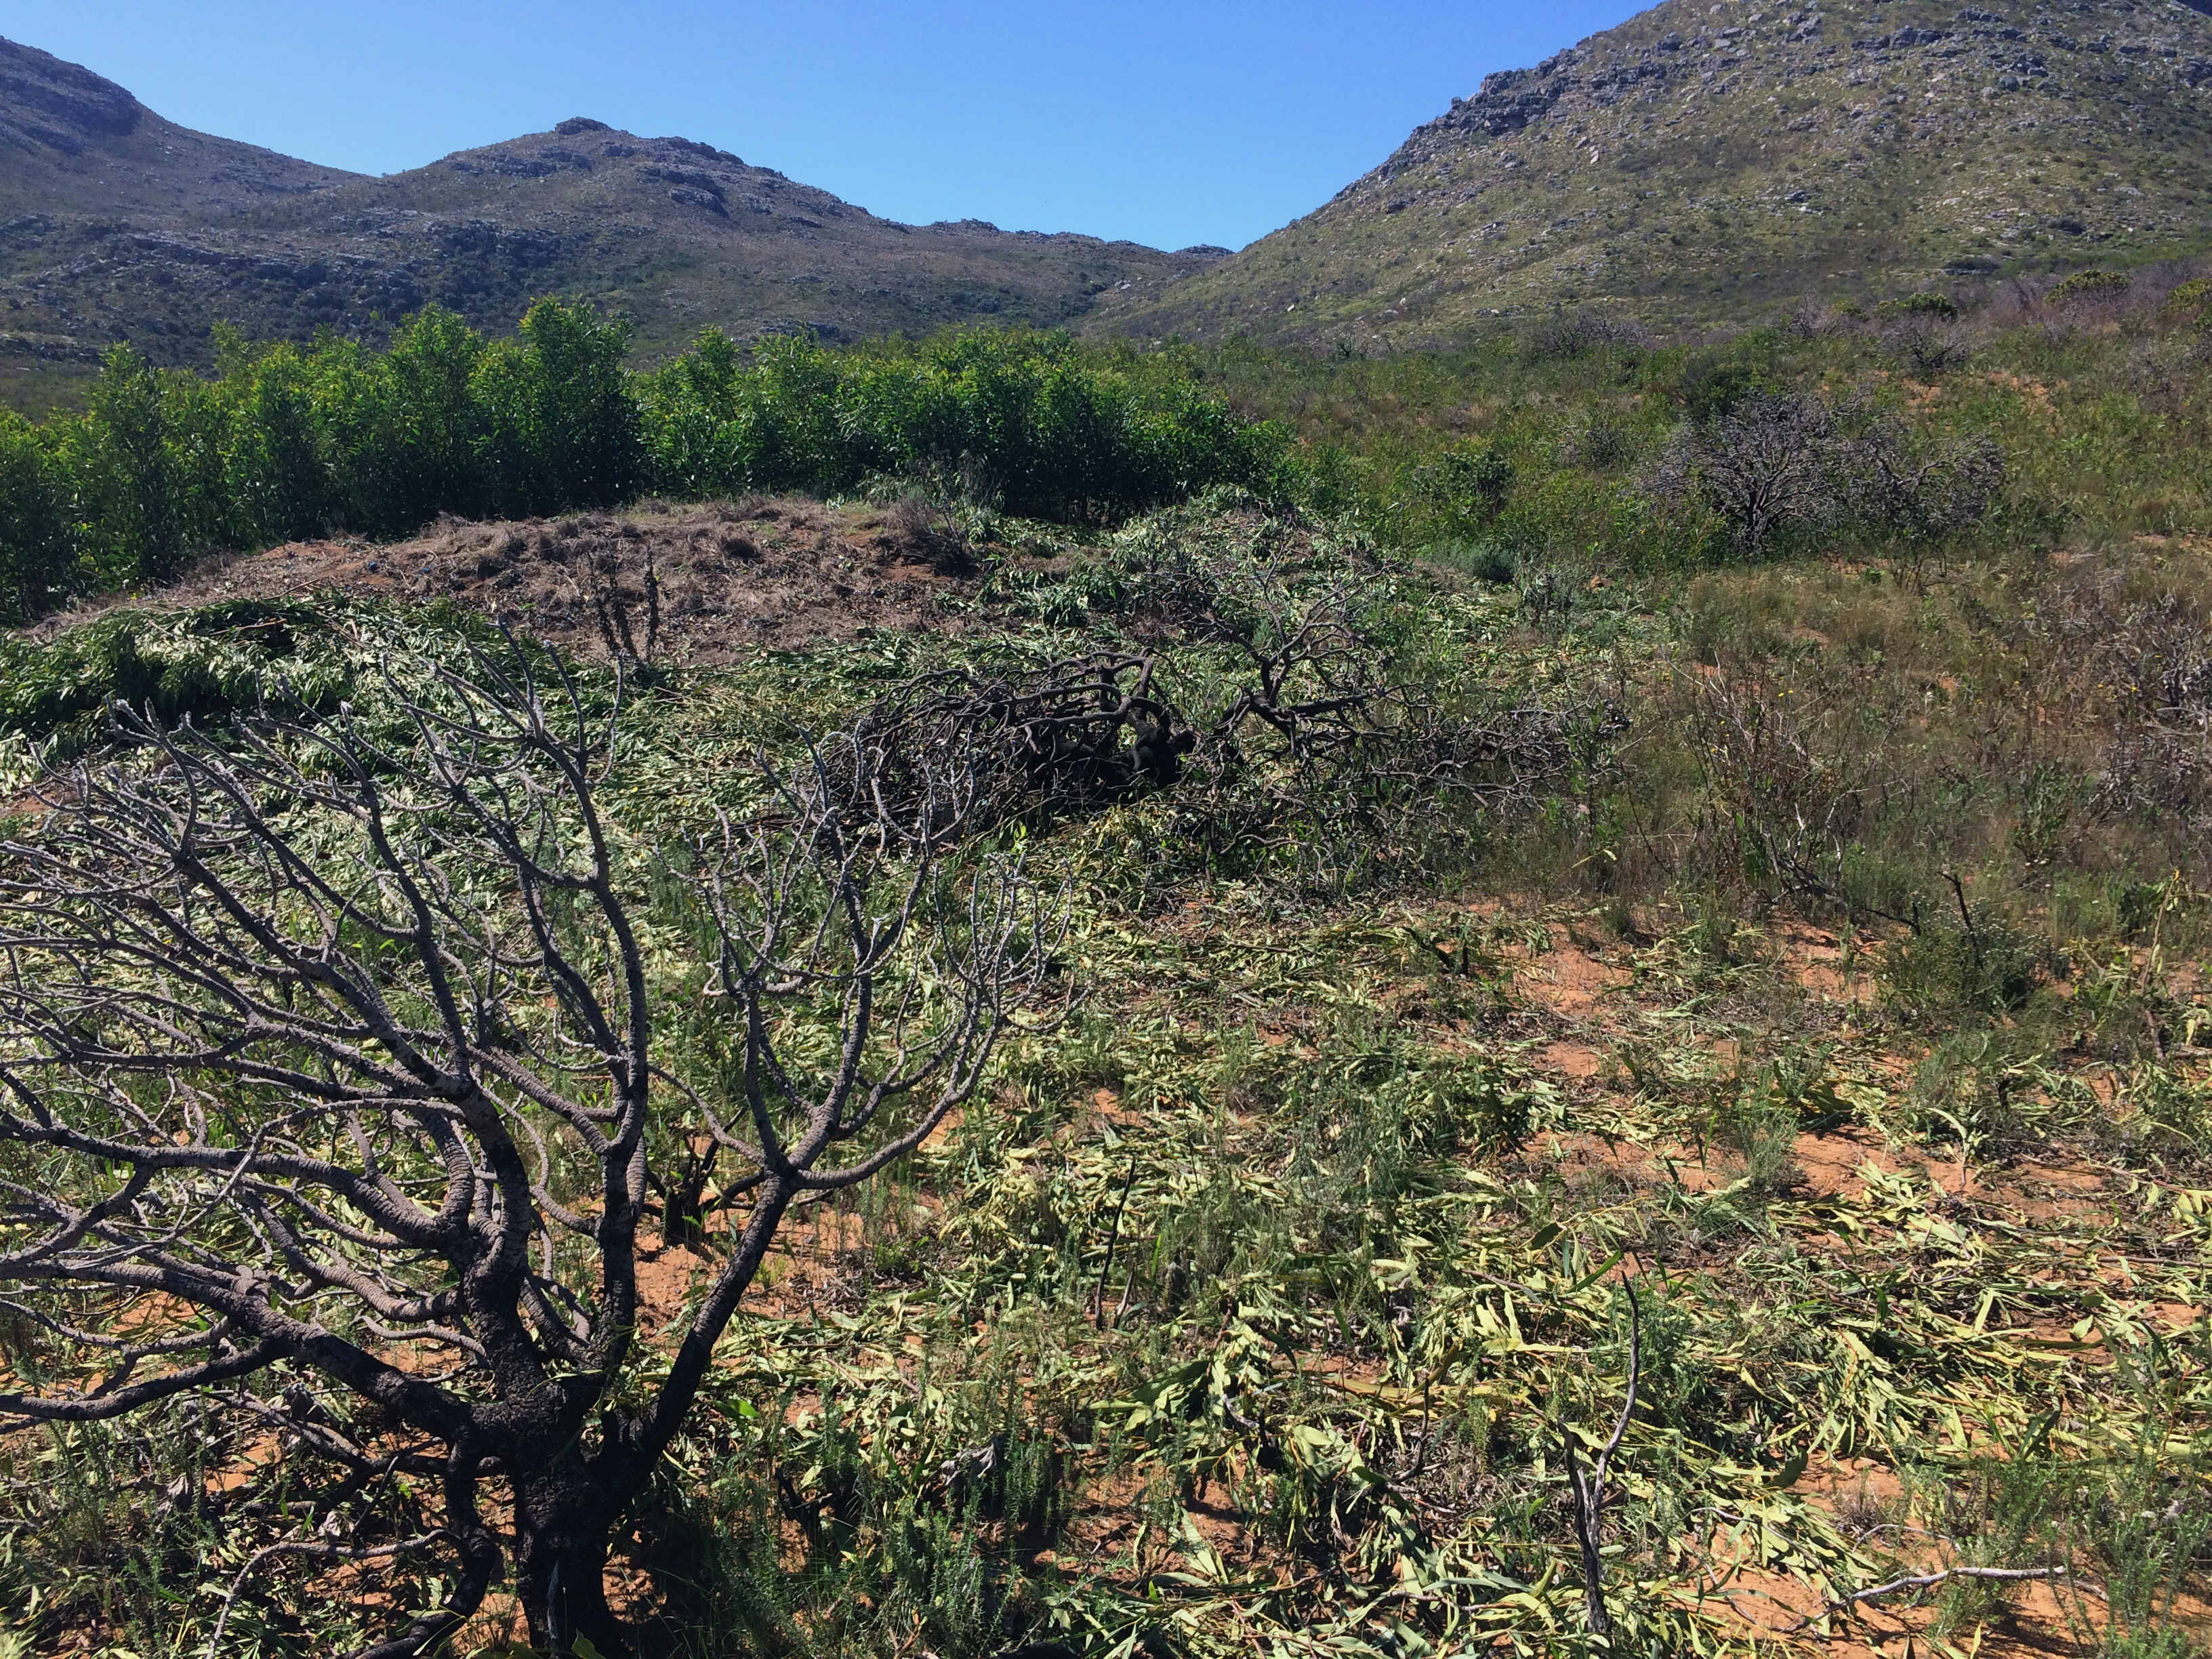 The change detection tool can detect incremental invasion of Fynbos by alien woody species as well as vegetation clearing. (Credit: Jasper Slingsby)